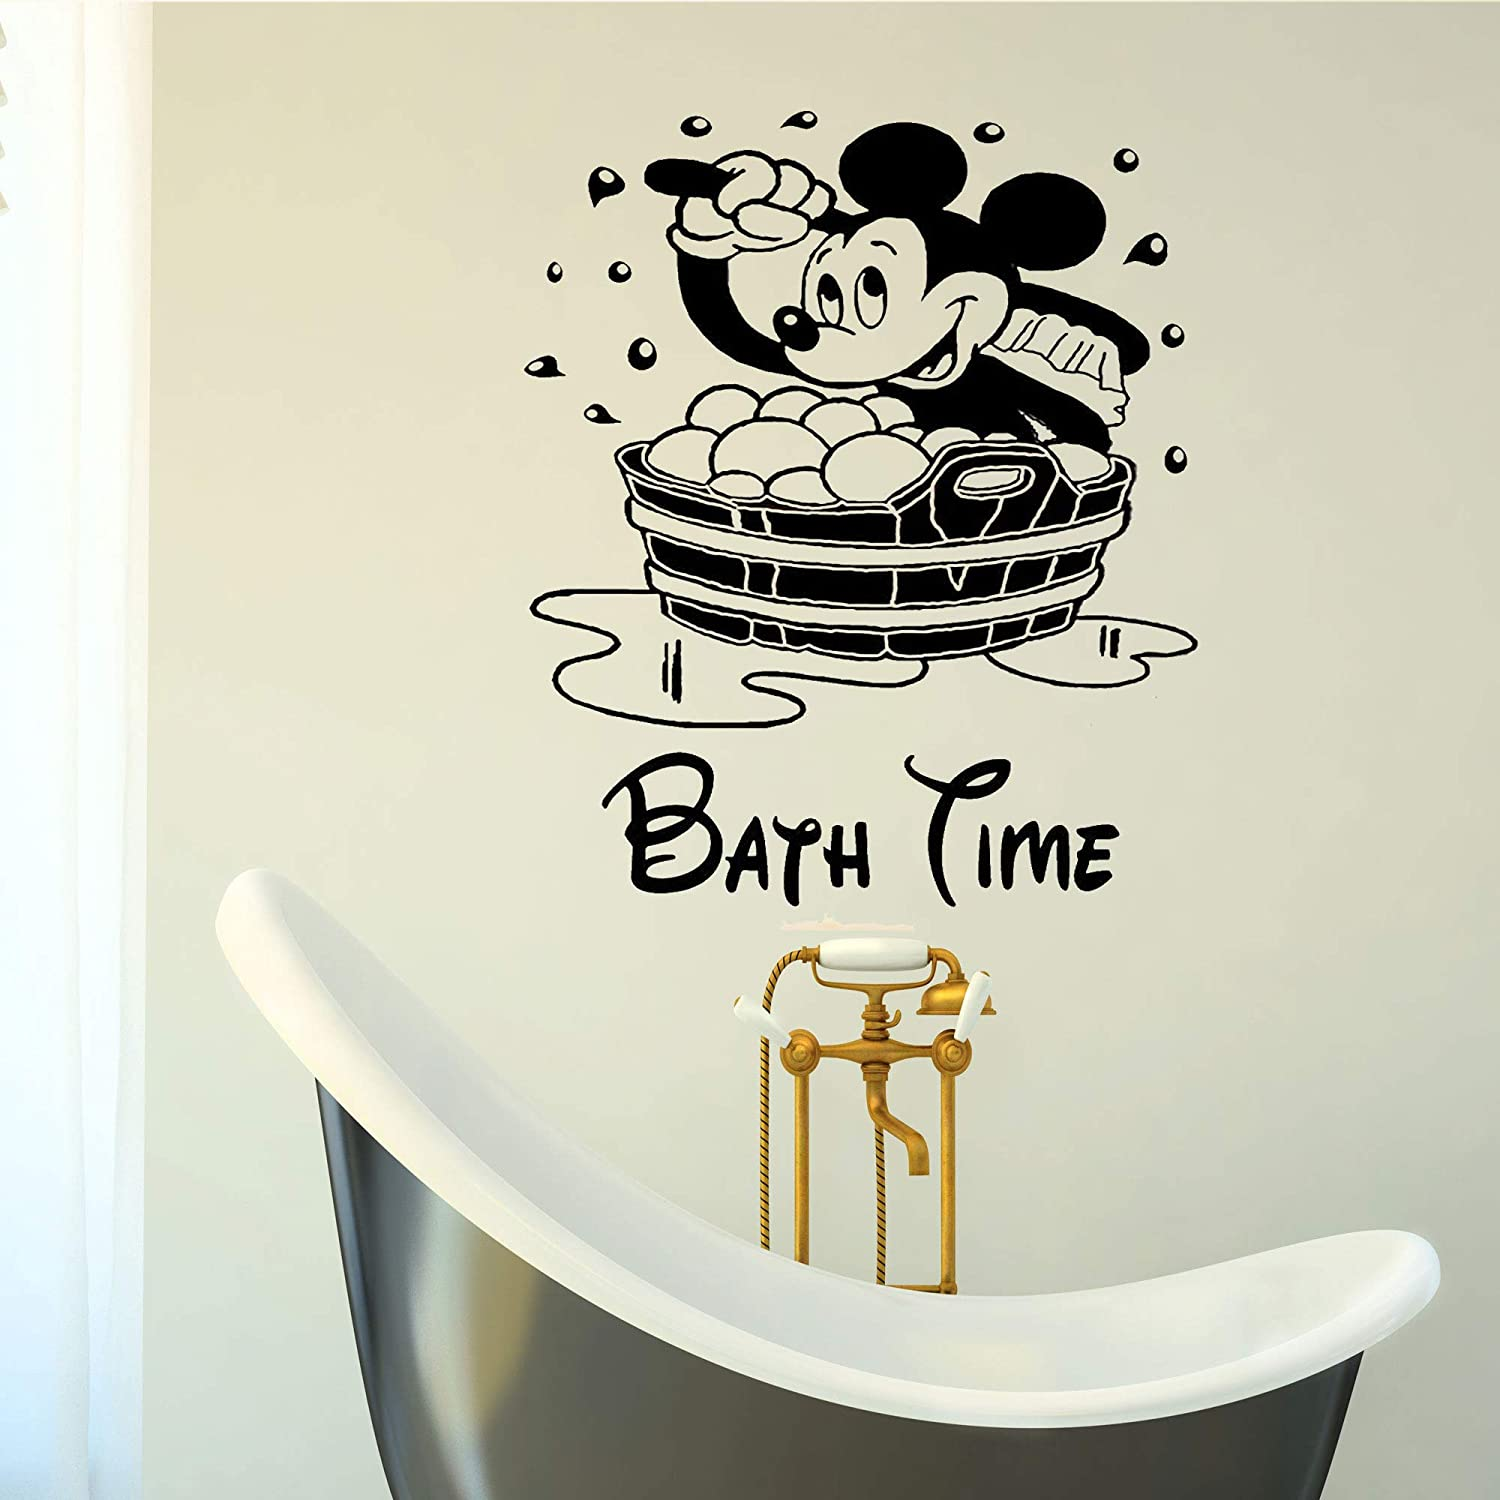 Mickey and minnie mouse vinyl sticker great for cars trucks bikes toy boxes nursery kids room windows kitchen bathroom bath tubs